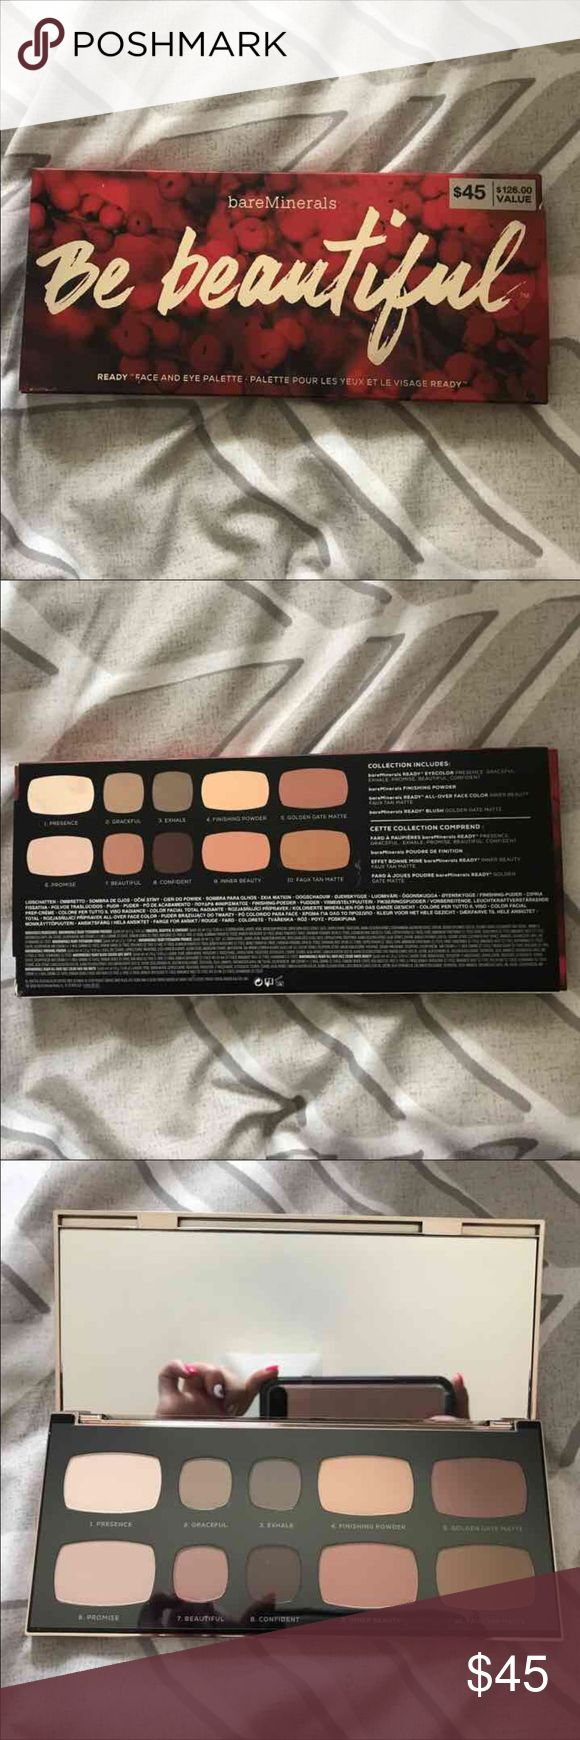 Be Beautiful Bare Minerals Palette Flawless. Never used or swatched. Only opened for picture. Bought it thinking I'd use it and don't bareMinerals Makeup Face Powder